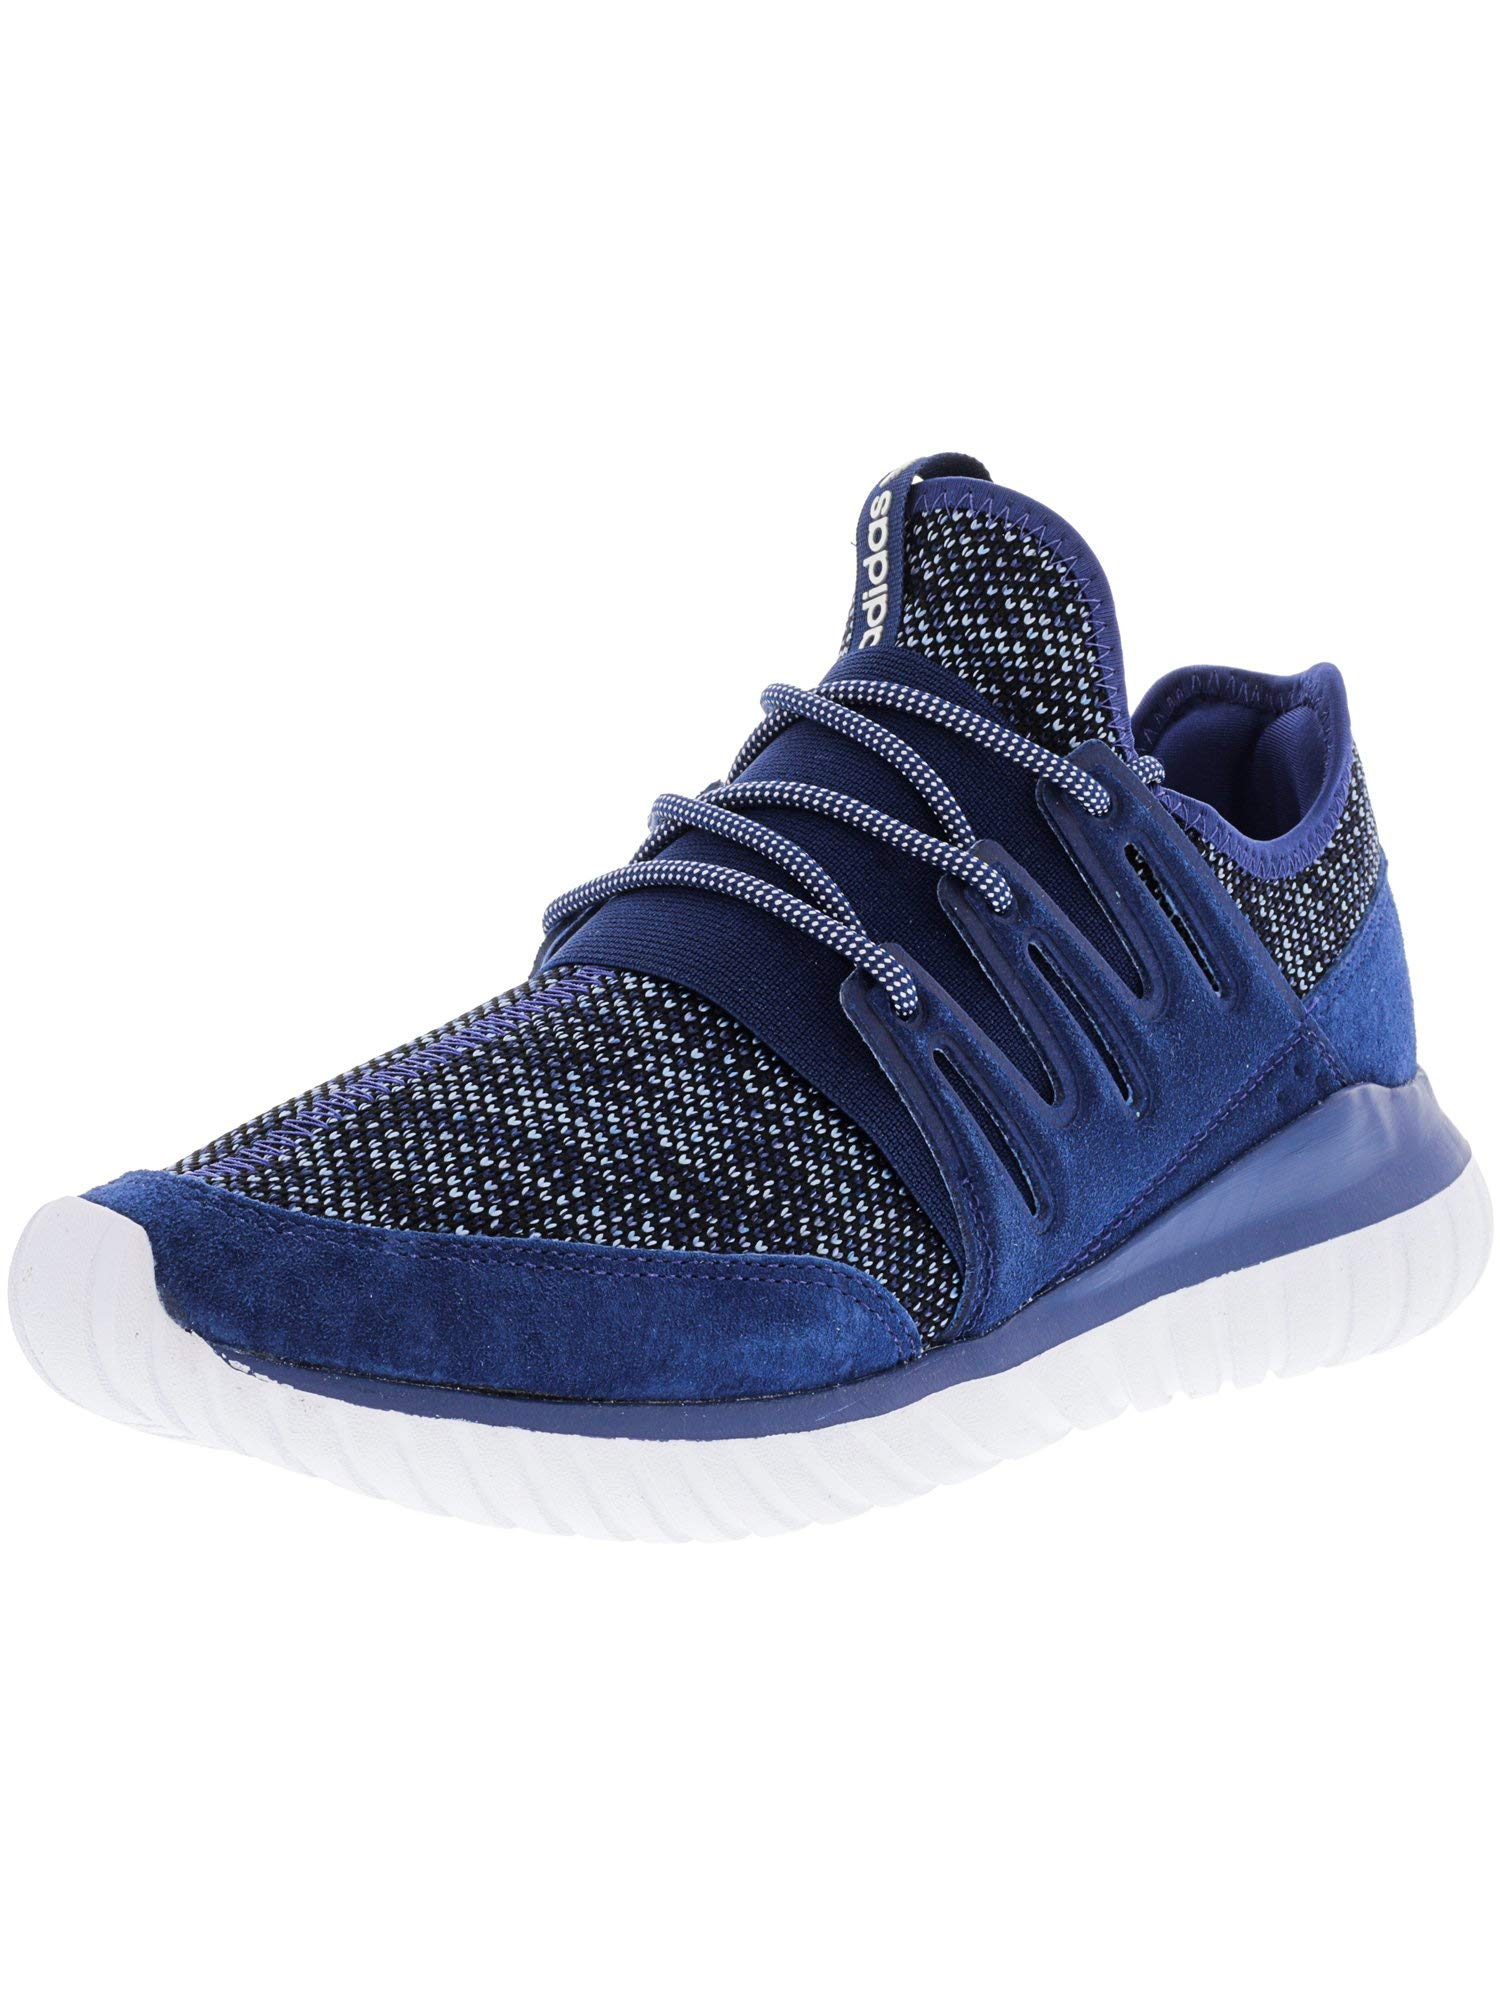 best sneakers 2f8a6 3850e Galleon - Adidas Originals Mens Tubular Radial Fashion Running Shoe,  Mystery Tactile Blue Black, (8 M US)